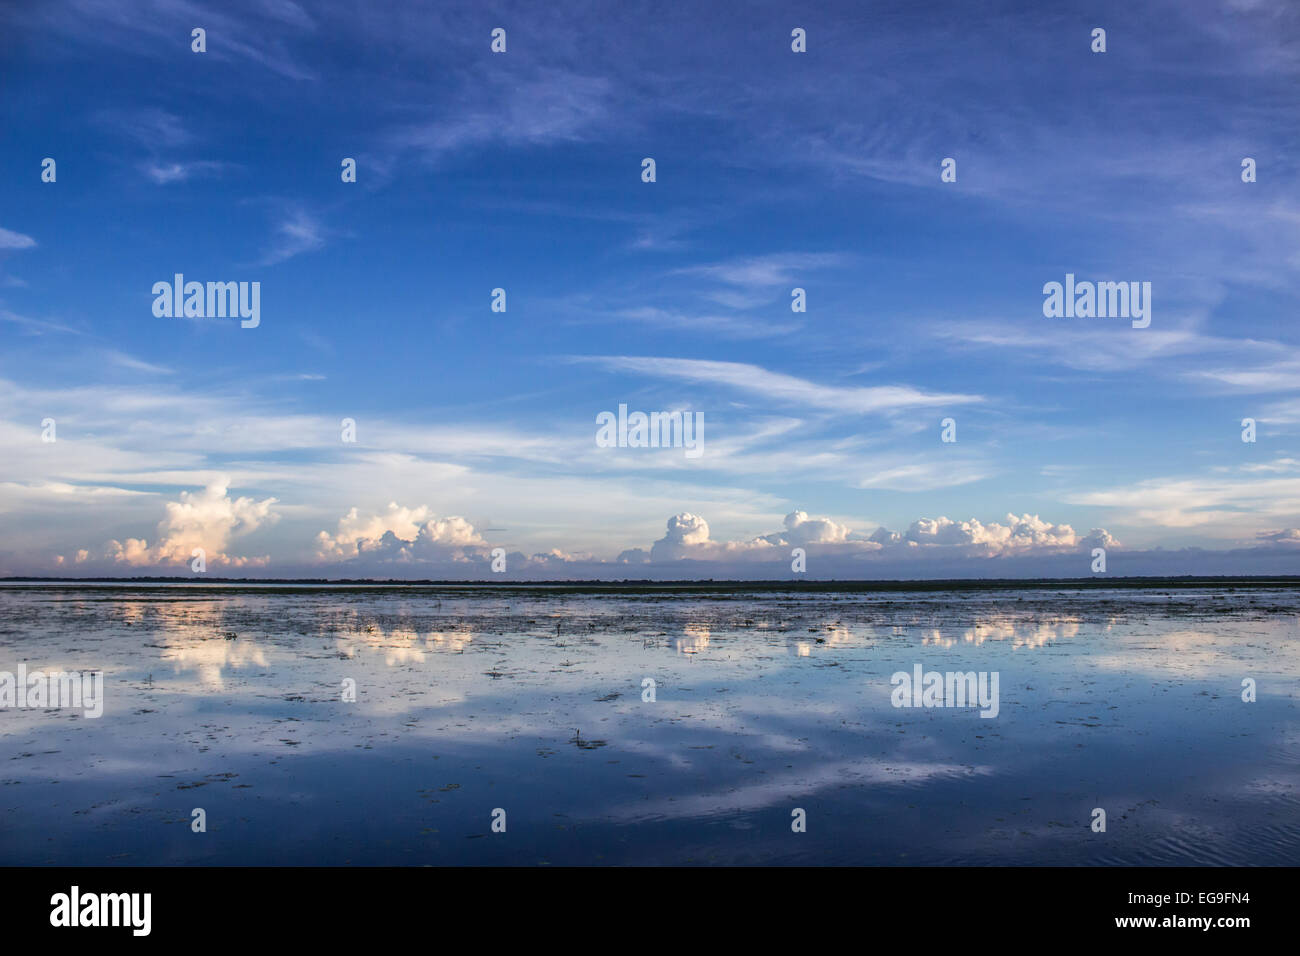 Bangladesh, Sunamgonj, Cumulus clouds reflecting in water - Stock Image